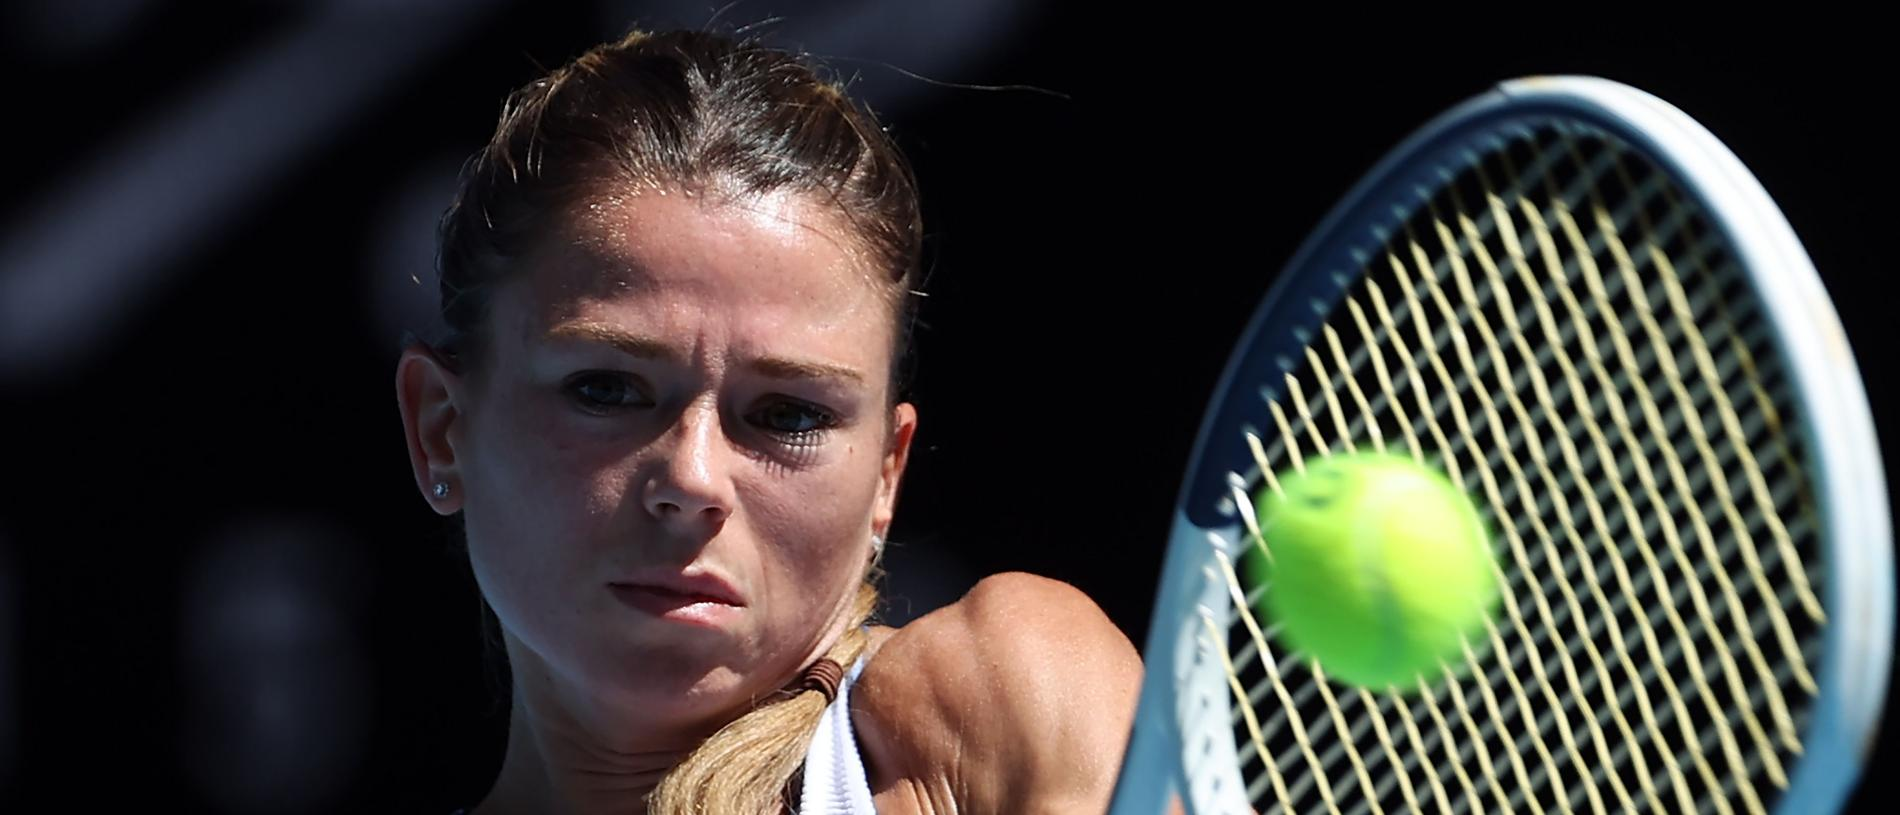 Italy's Camila Giorgi hits a return against Germany's Angelique Kerber during their women's singles match on day six of the Australian Open tennis tournament in Melbourne on January 25, 2020. (Photo by DAVID GRAY / AFP) / IMAGE RESTRICTED TO EDITORIAL USE - STRICTLY NO COMMERCIAL USE